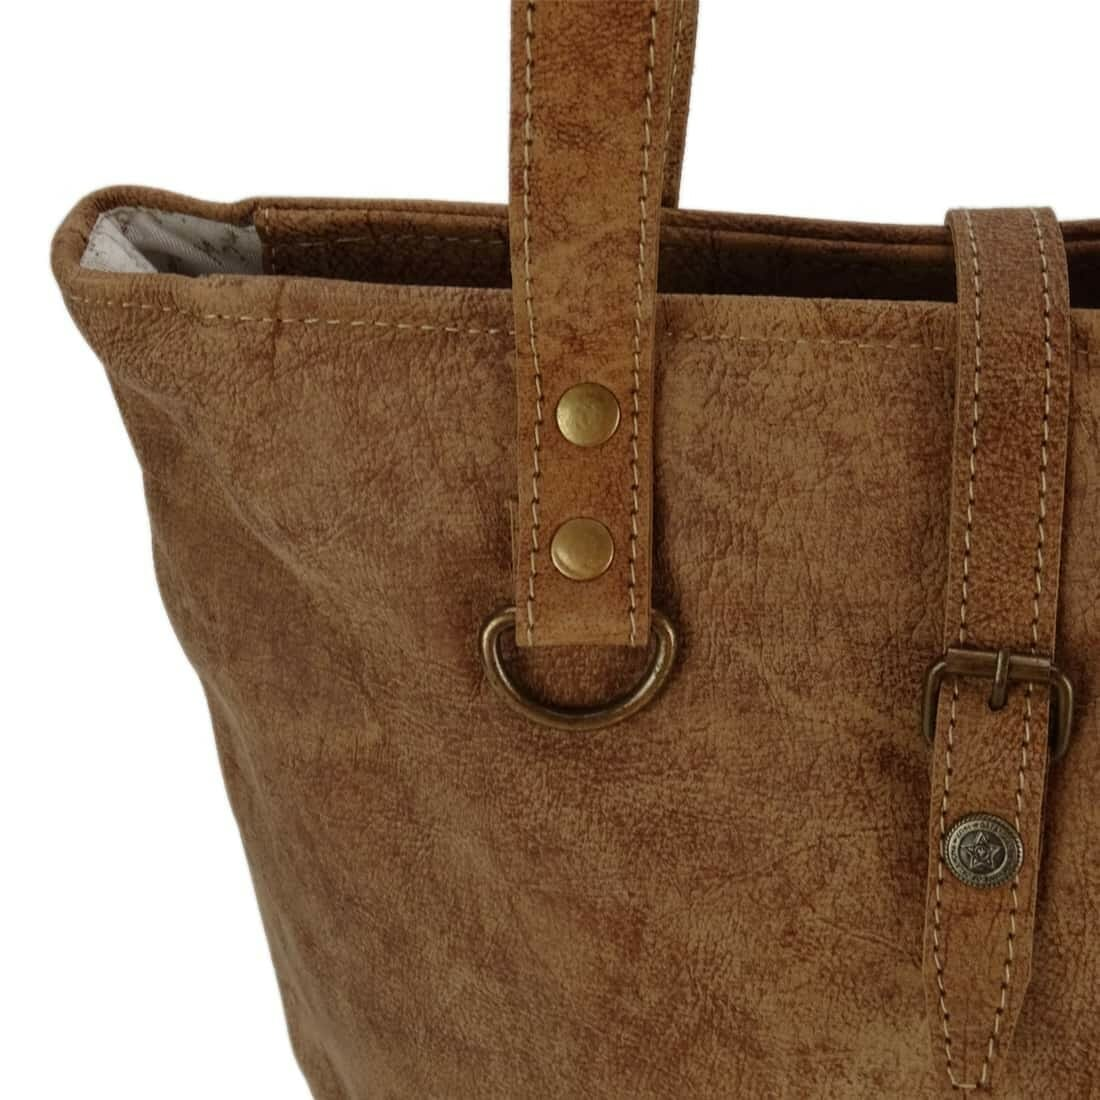 Myra Bag Leren Emma detail1